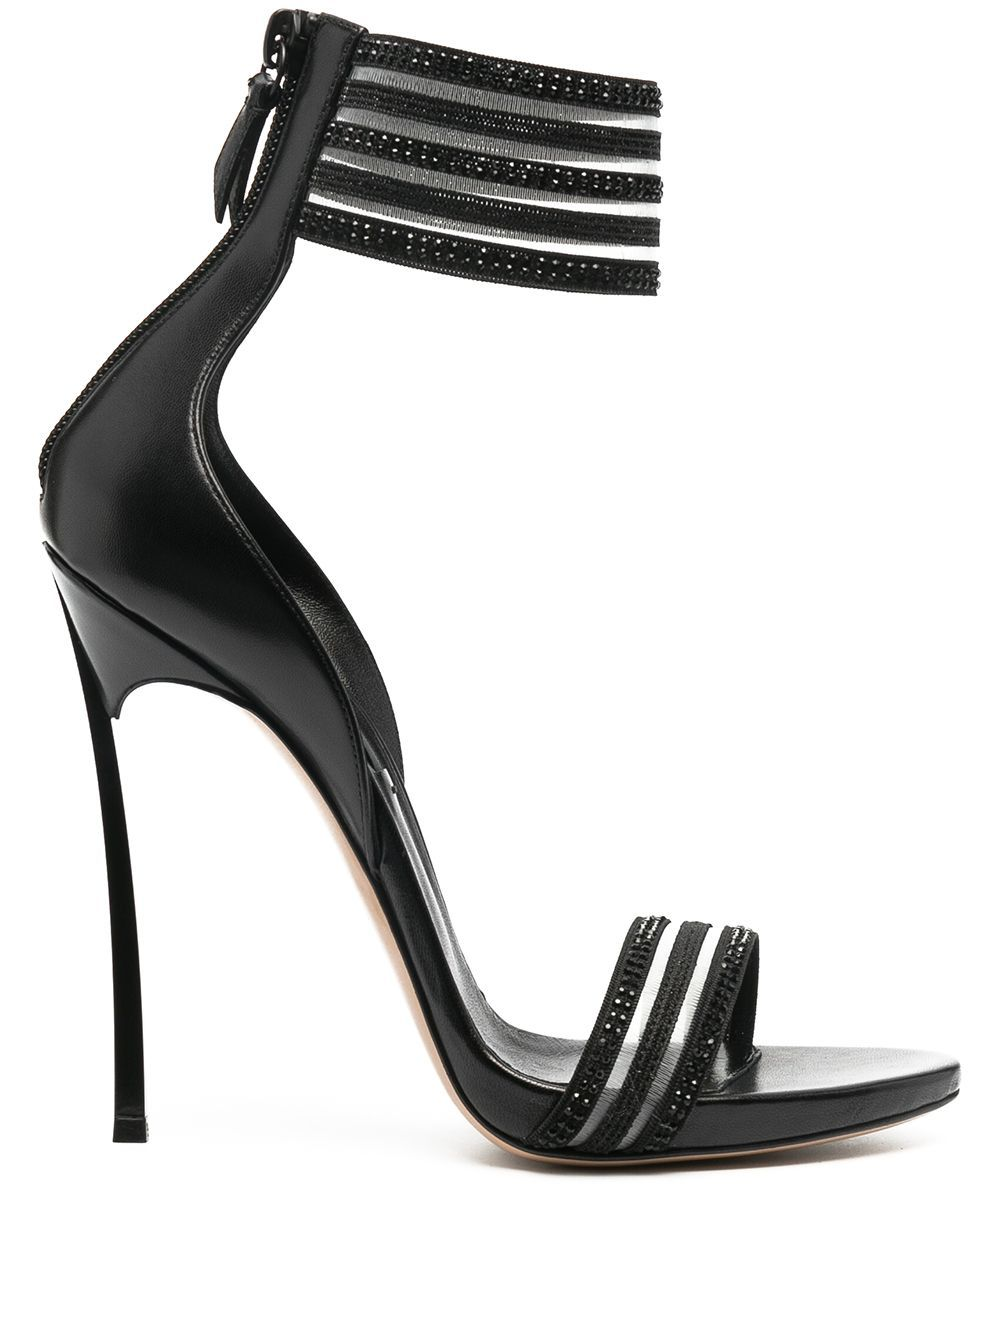 Casadei CASADEI WOMEN'S BLACK LEATHER SANDALS